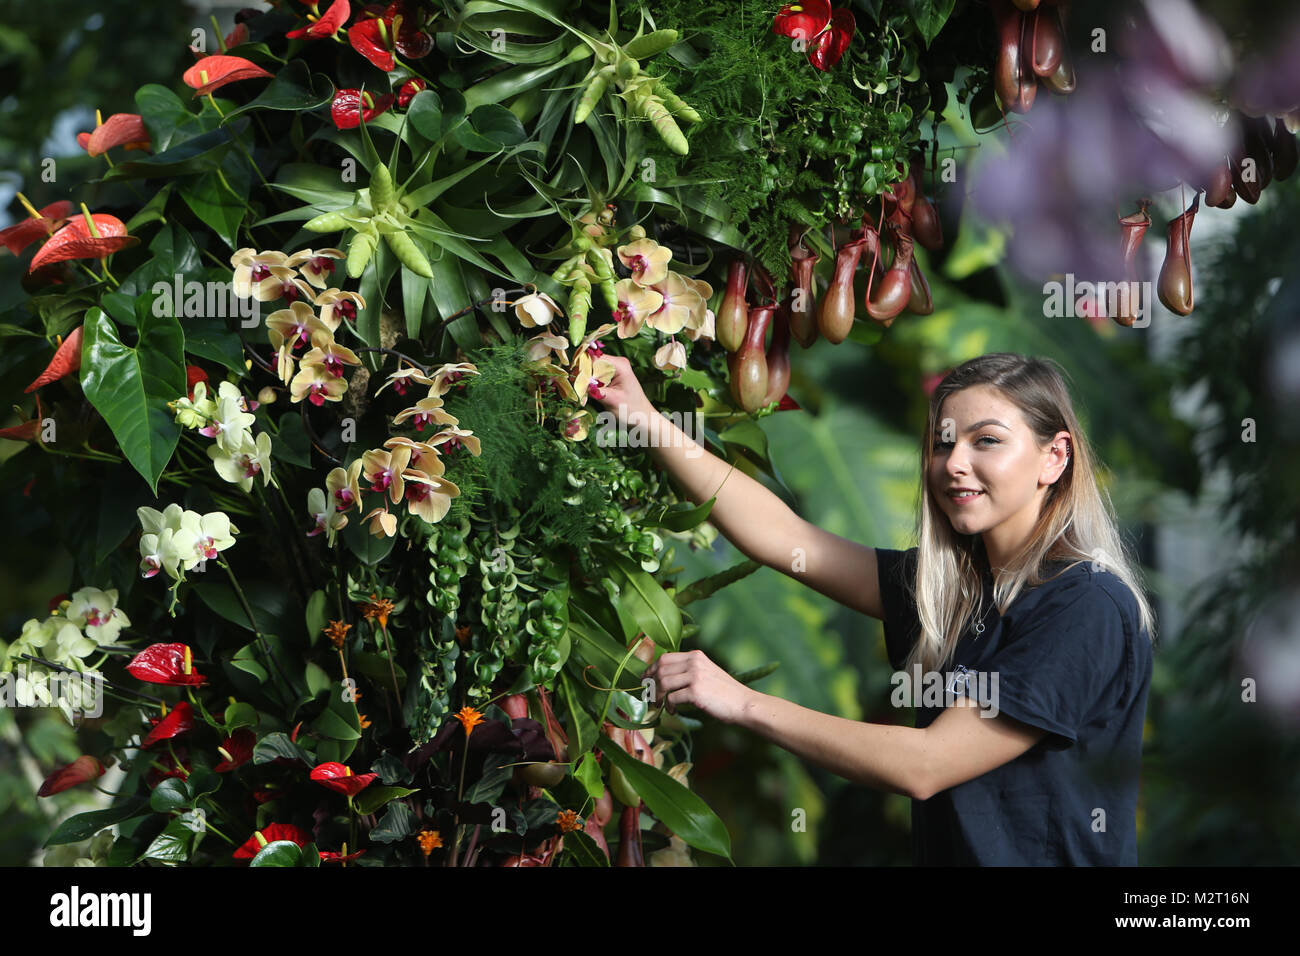 London UK 8 February 2018 Kew gardens getting ready for the 23h annual Kew Gardens Orchid Festival.Jennie Forgie - Stock Image